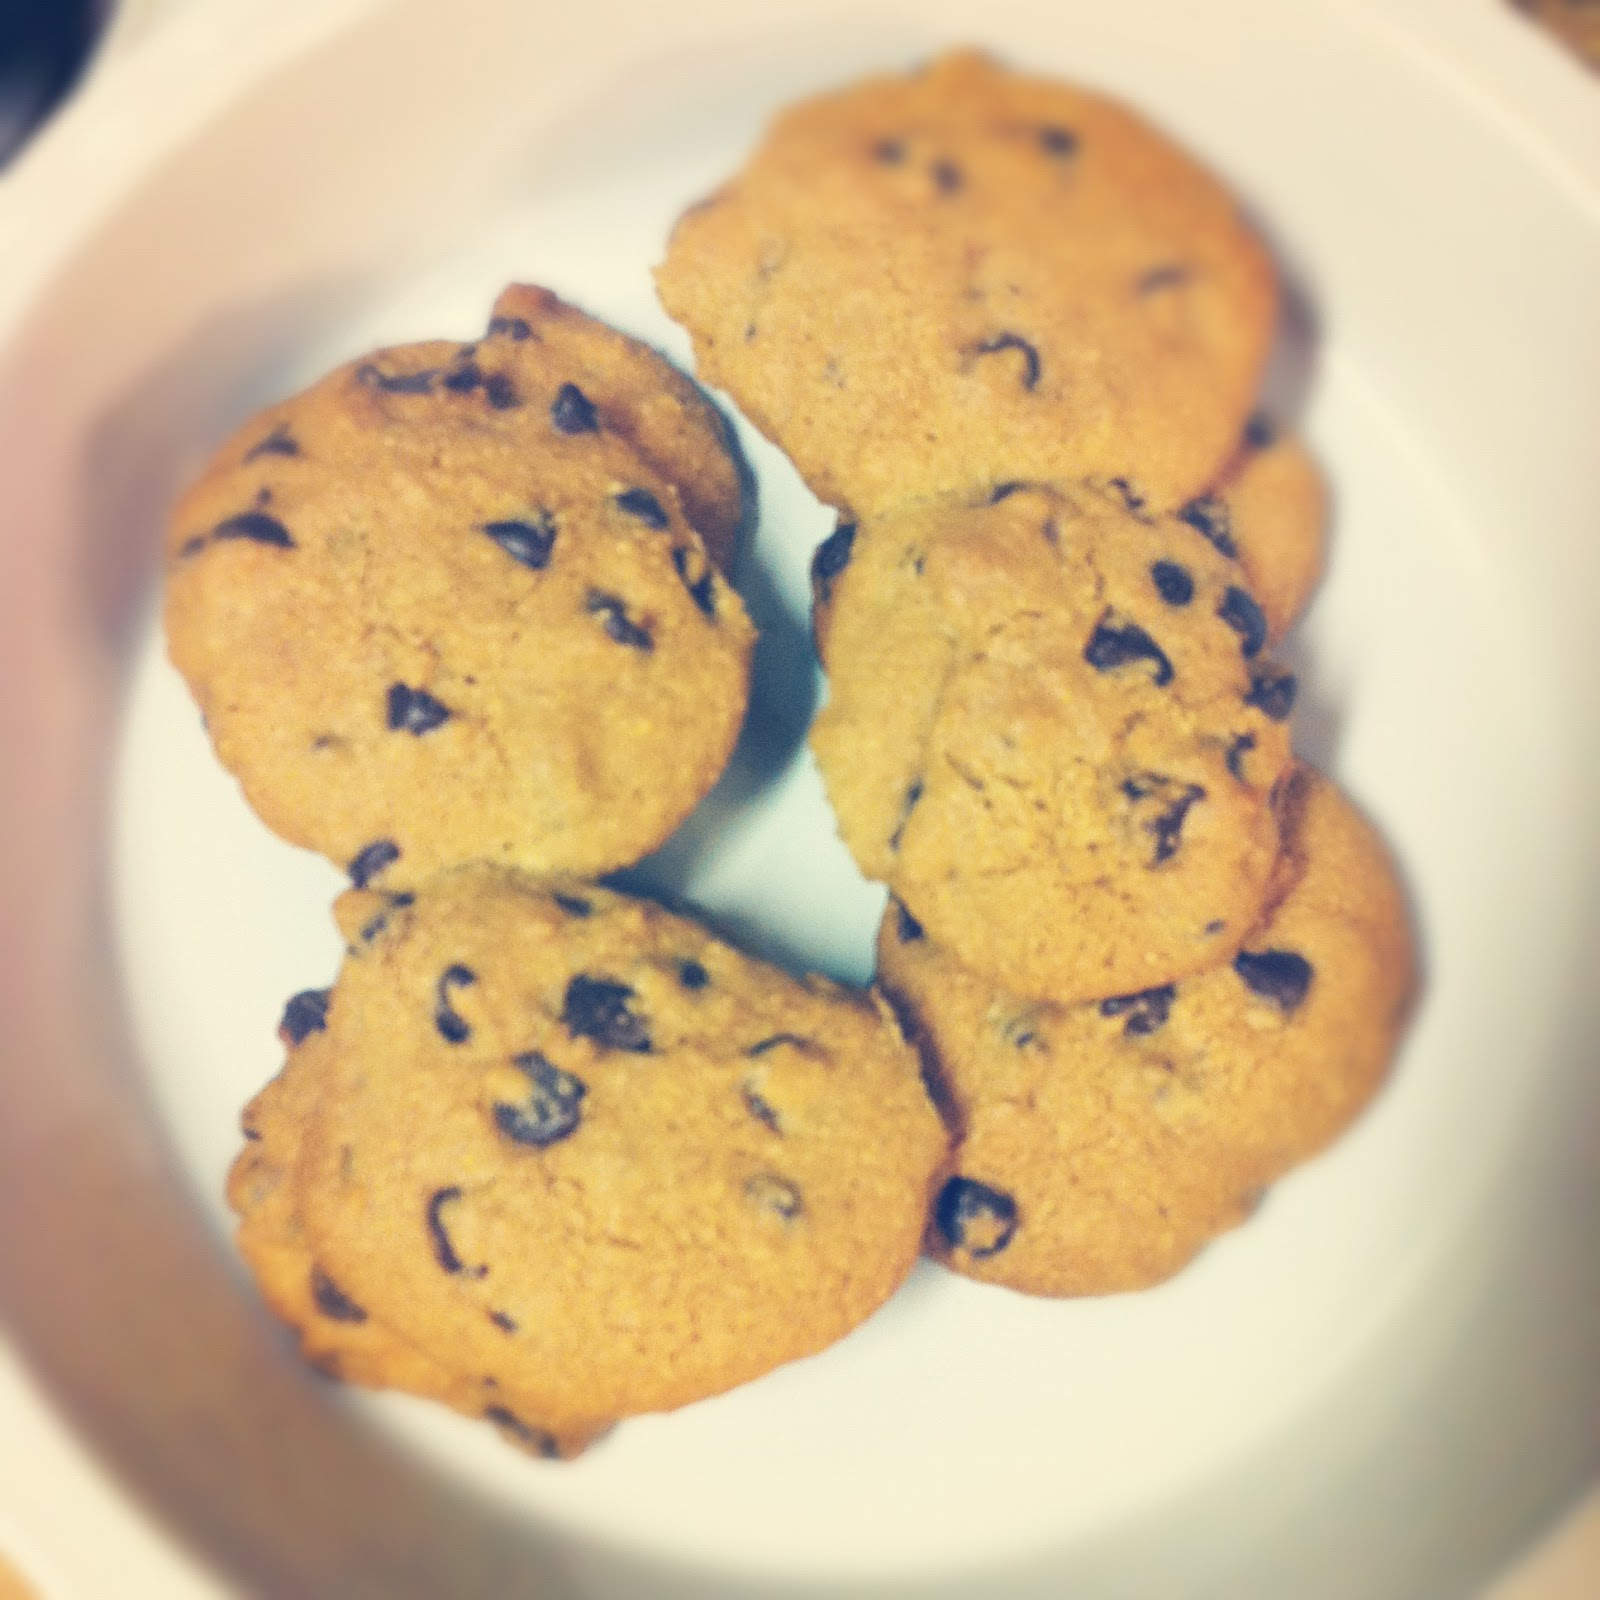 ... after going paleo i made these delicious paleo chocolate chip cookies